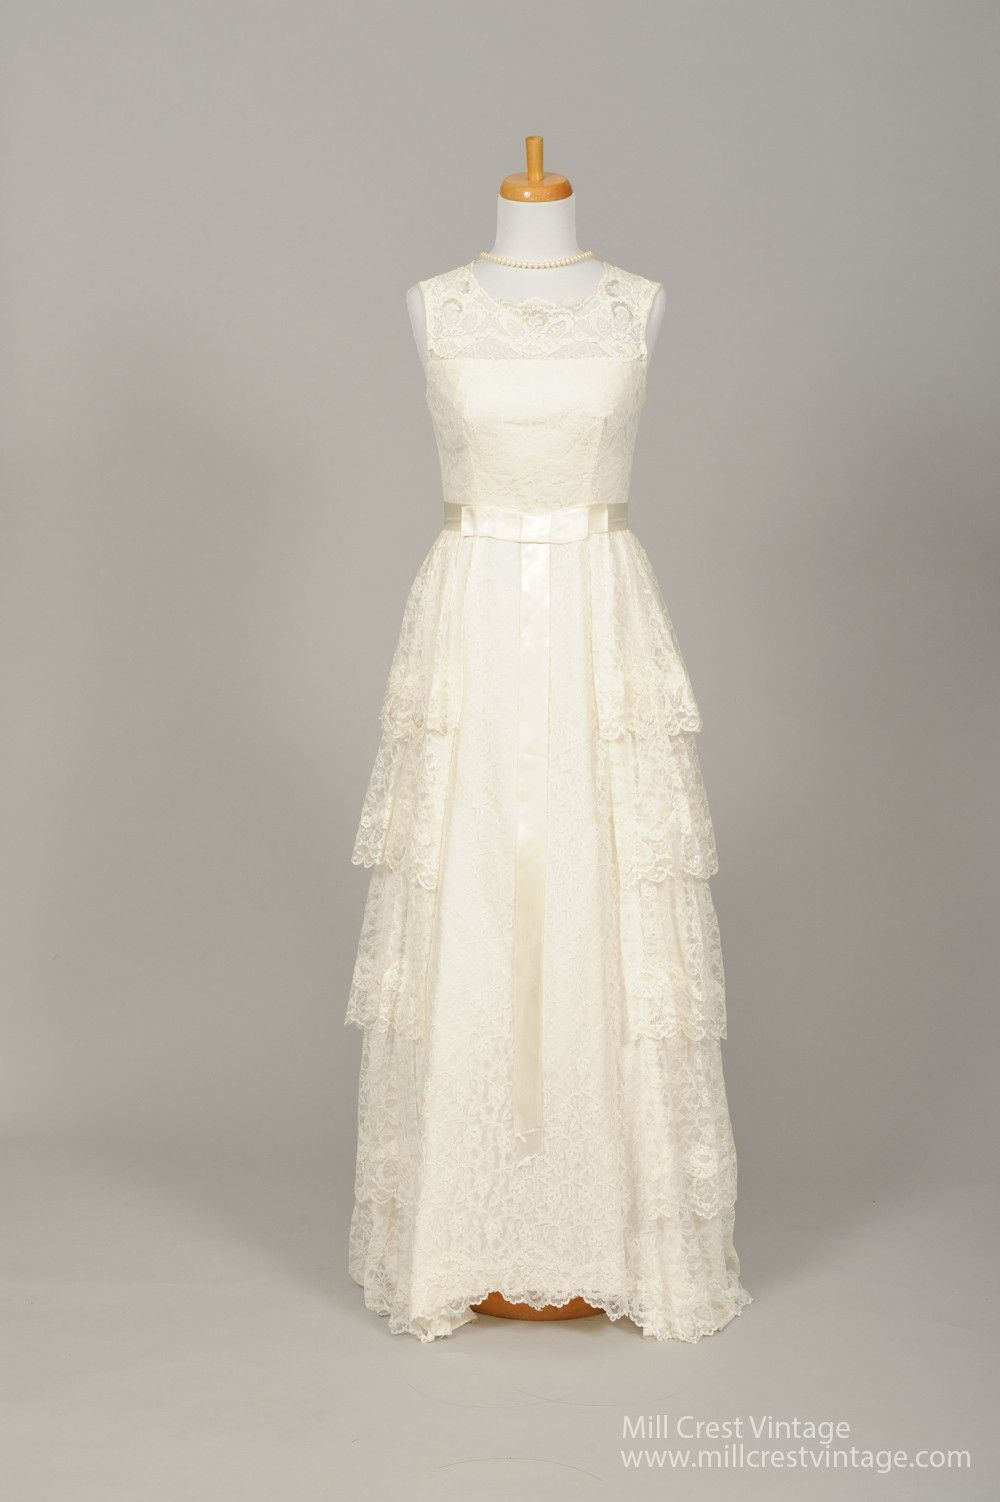 Designed in the 50's, this sweet vintage wedding gown is done in a floral lace over an acetate lining. The sleeveless bodice offers a scalloped scooped neckline and back. The long, asymmetrically cut